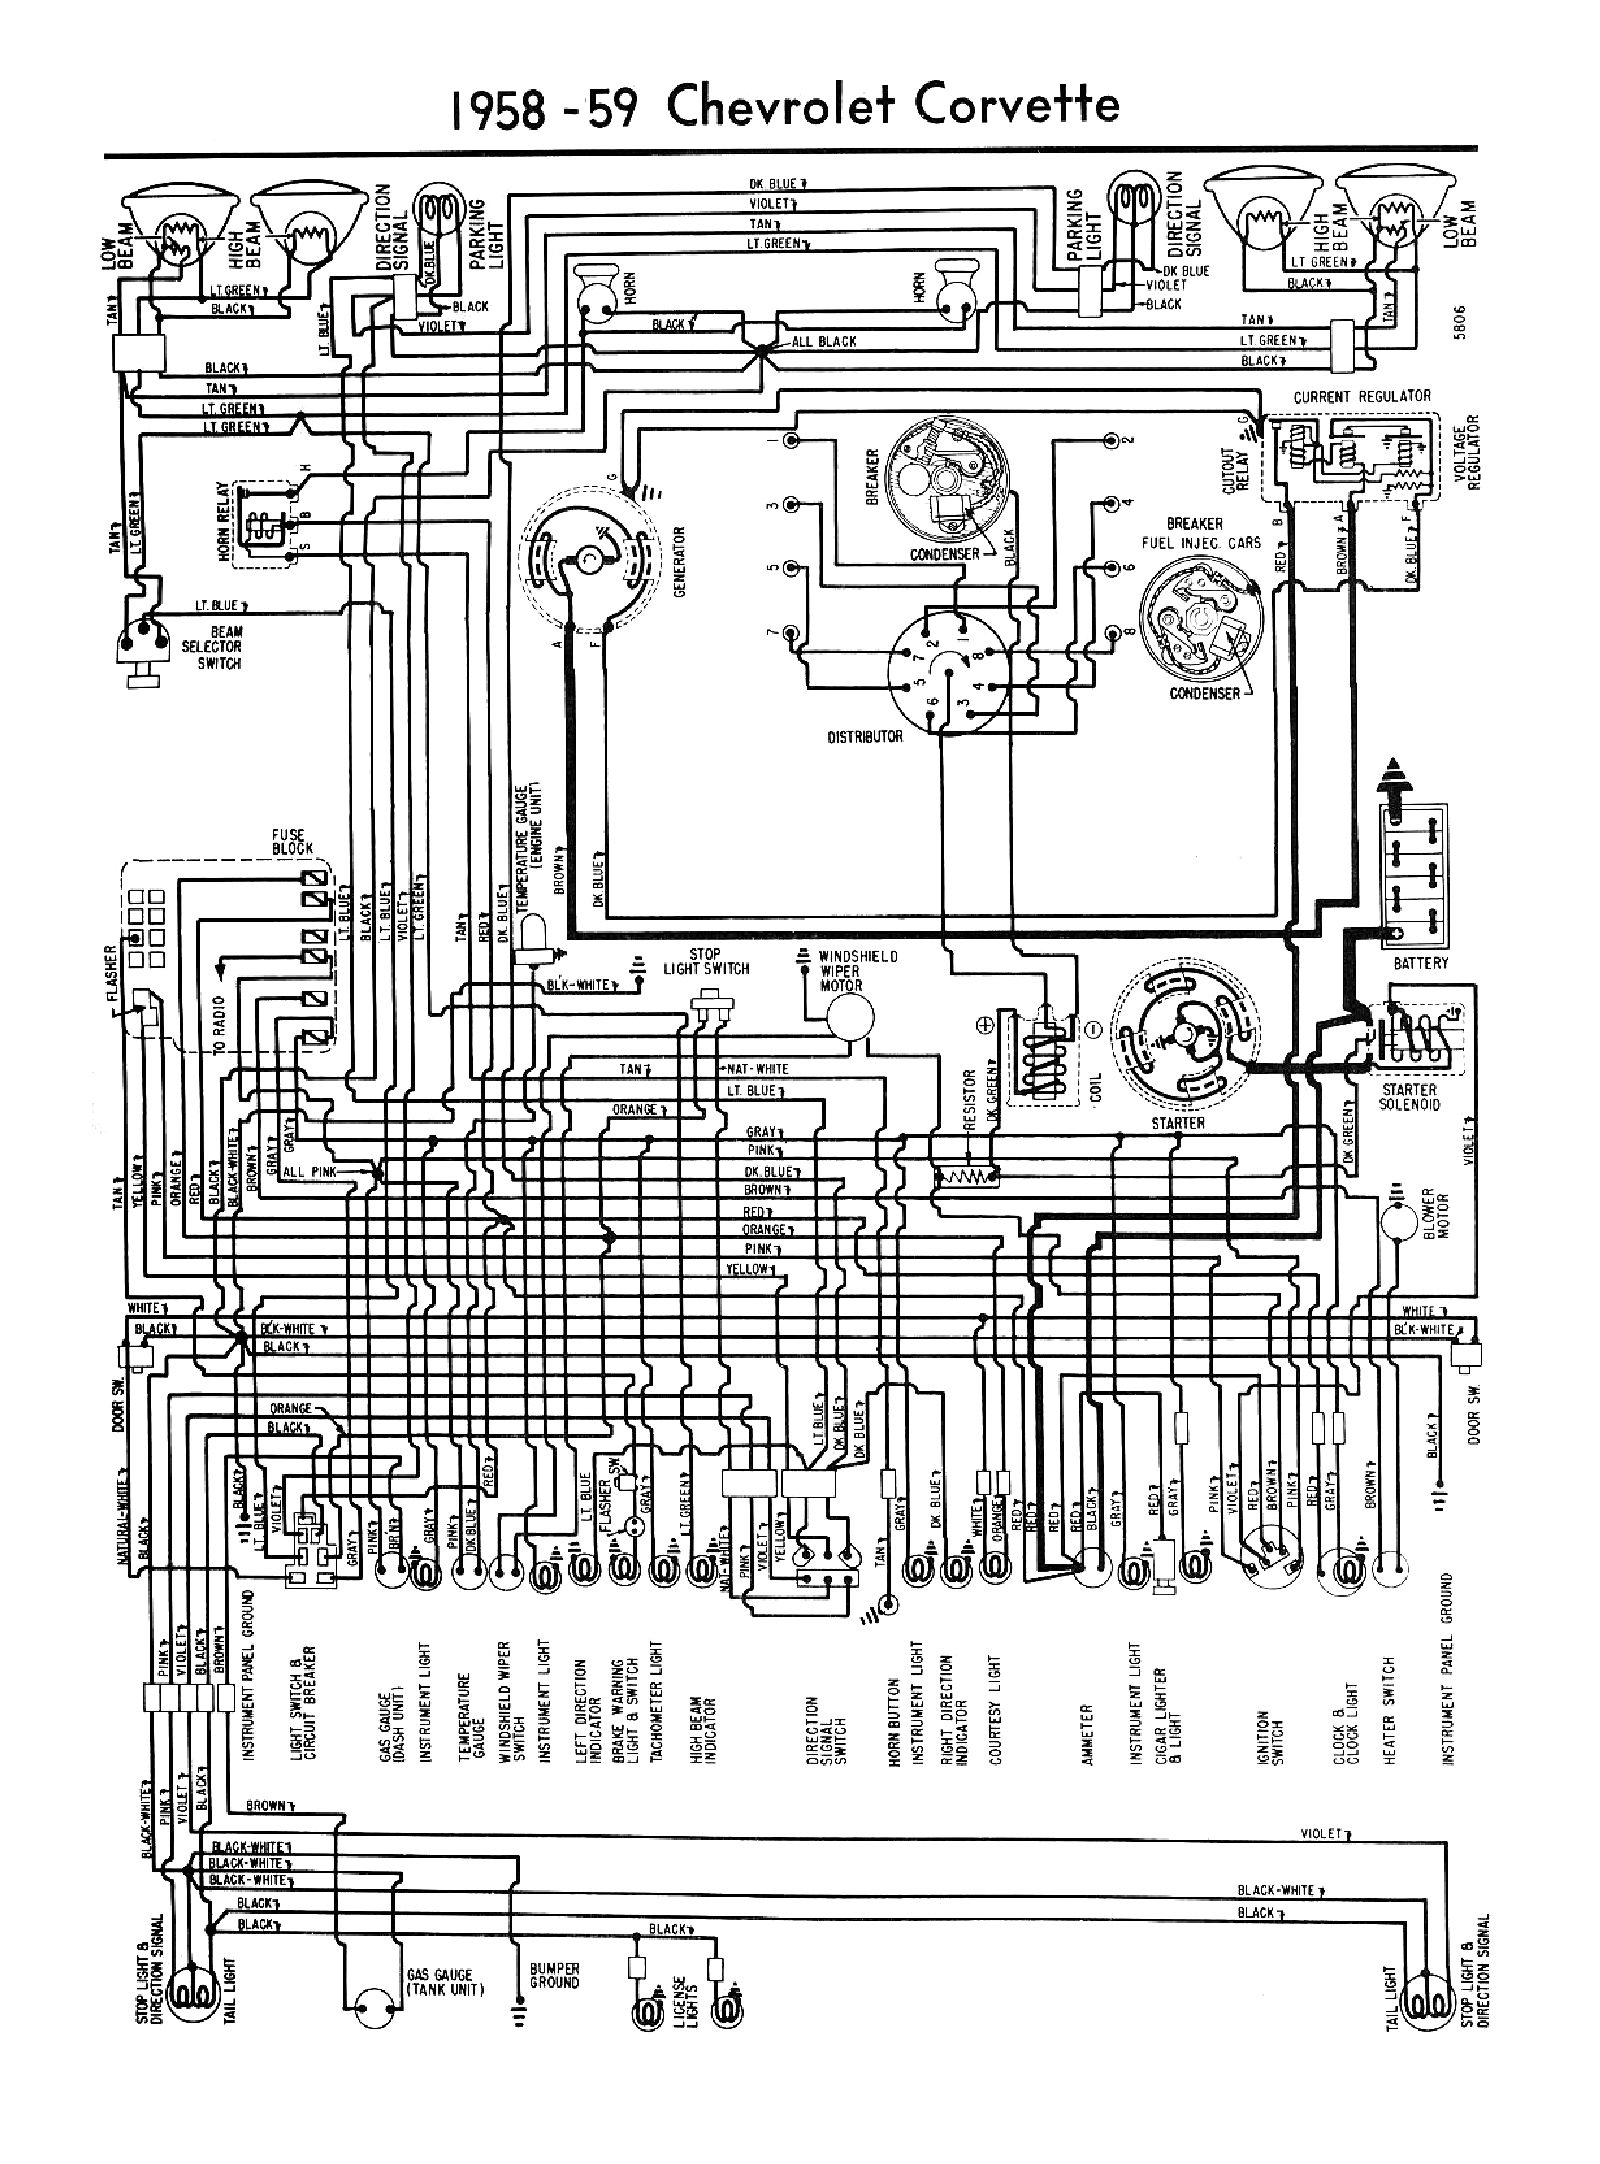 hight resolution of 53 buick wiring diagram free picture schematic wiring diagrams buick fuel system diagram 53 buick wiring diagram